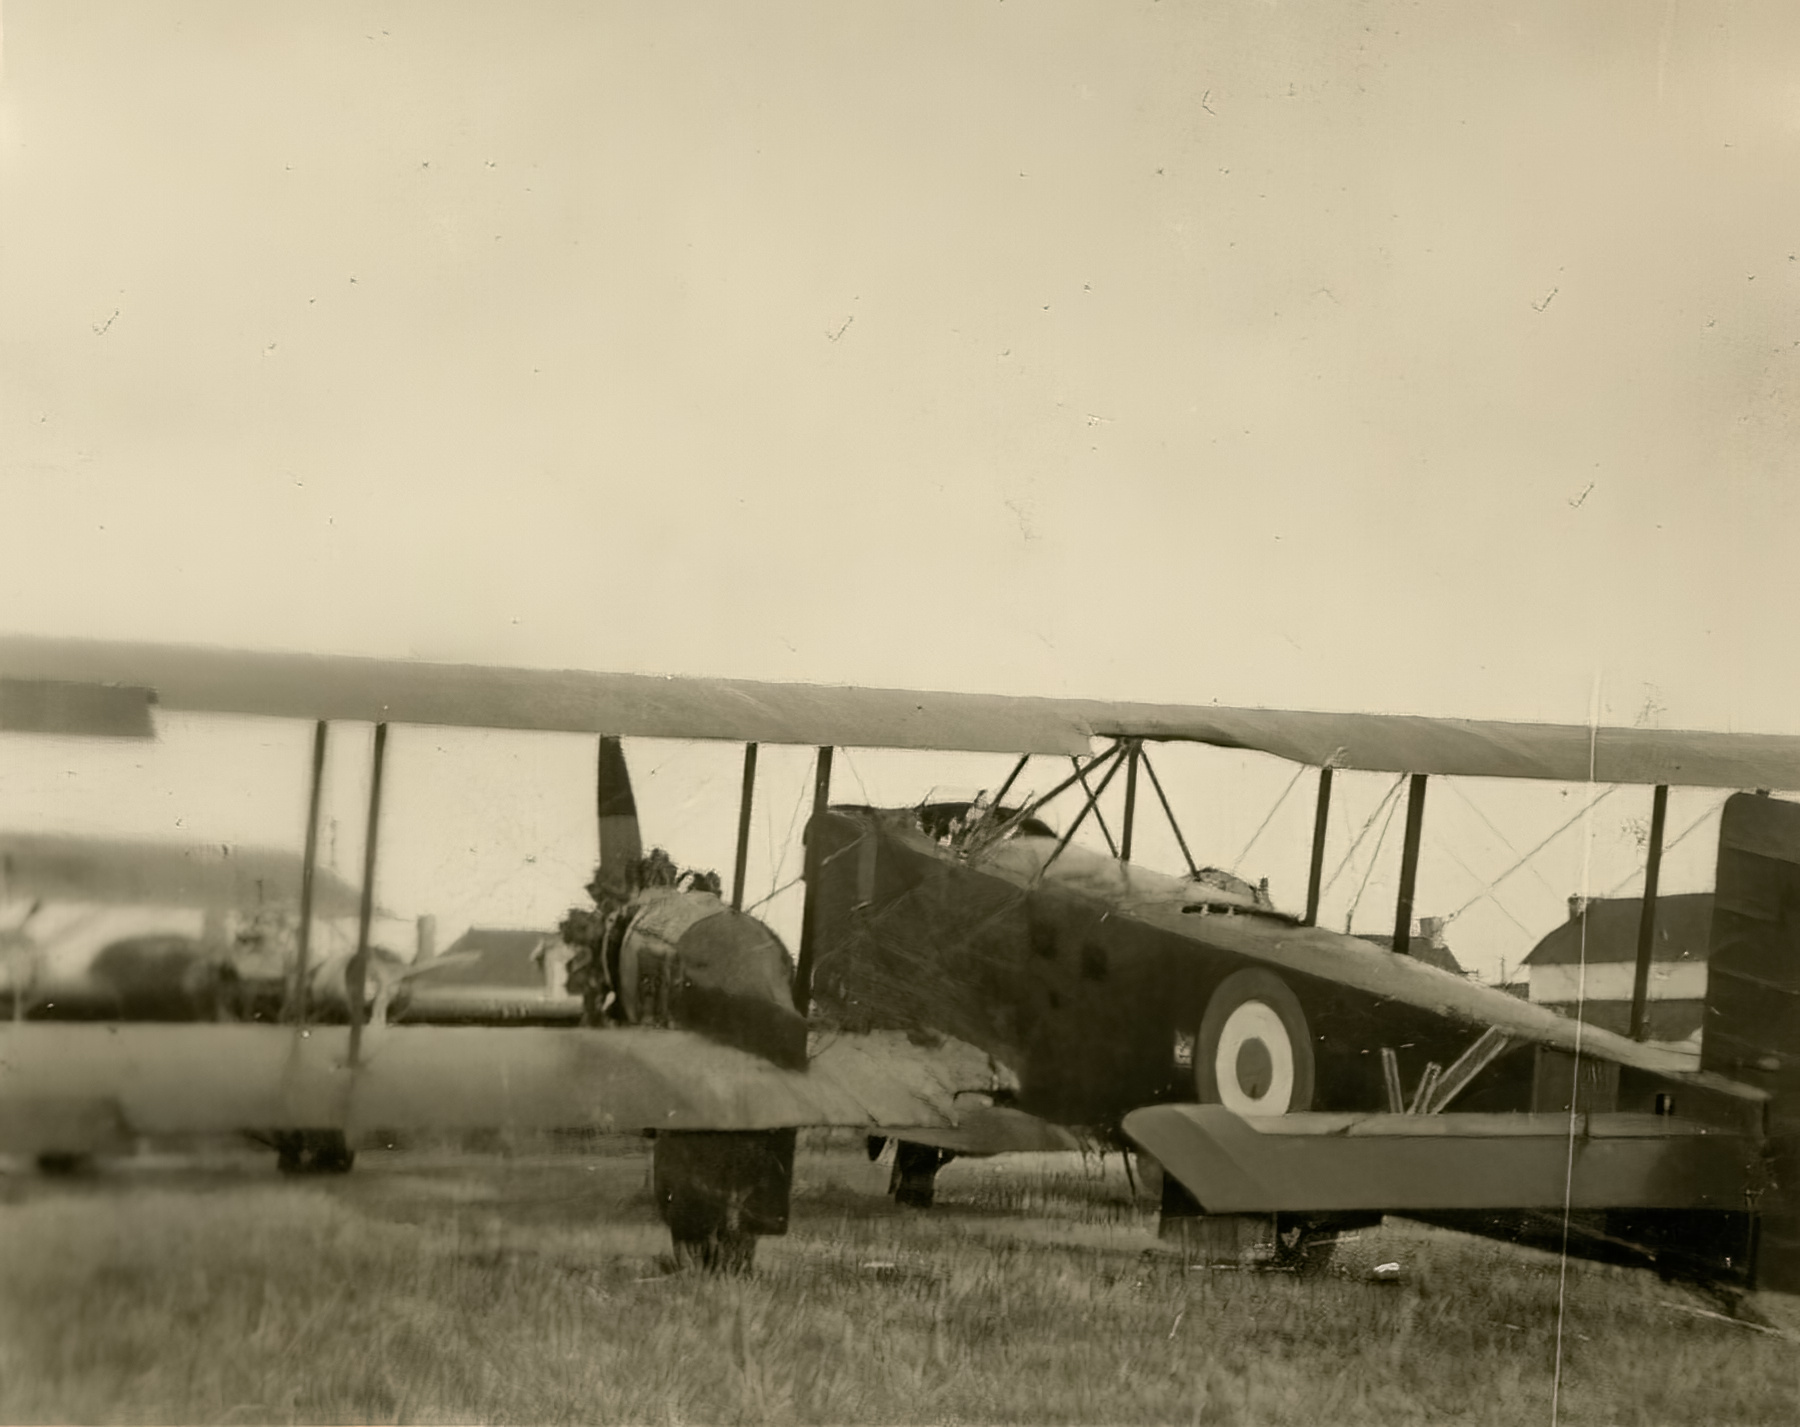 French Airforce Liore et Olivier LeO 20 left abandoned after the fall of France 5th Jul 1940 ebay 01